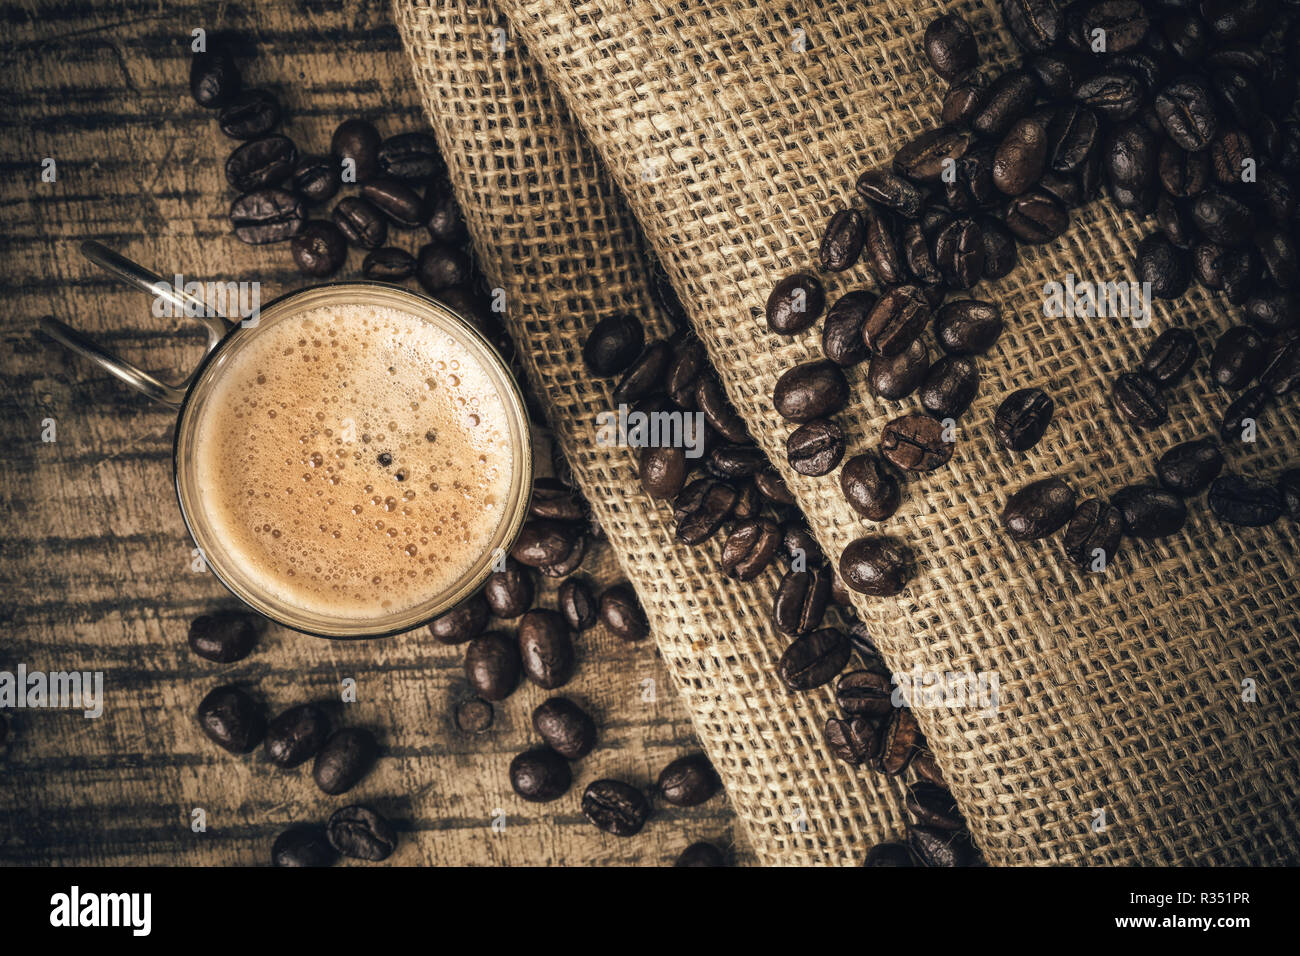 Espresso coffee on an old wooden table - Stock Image